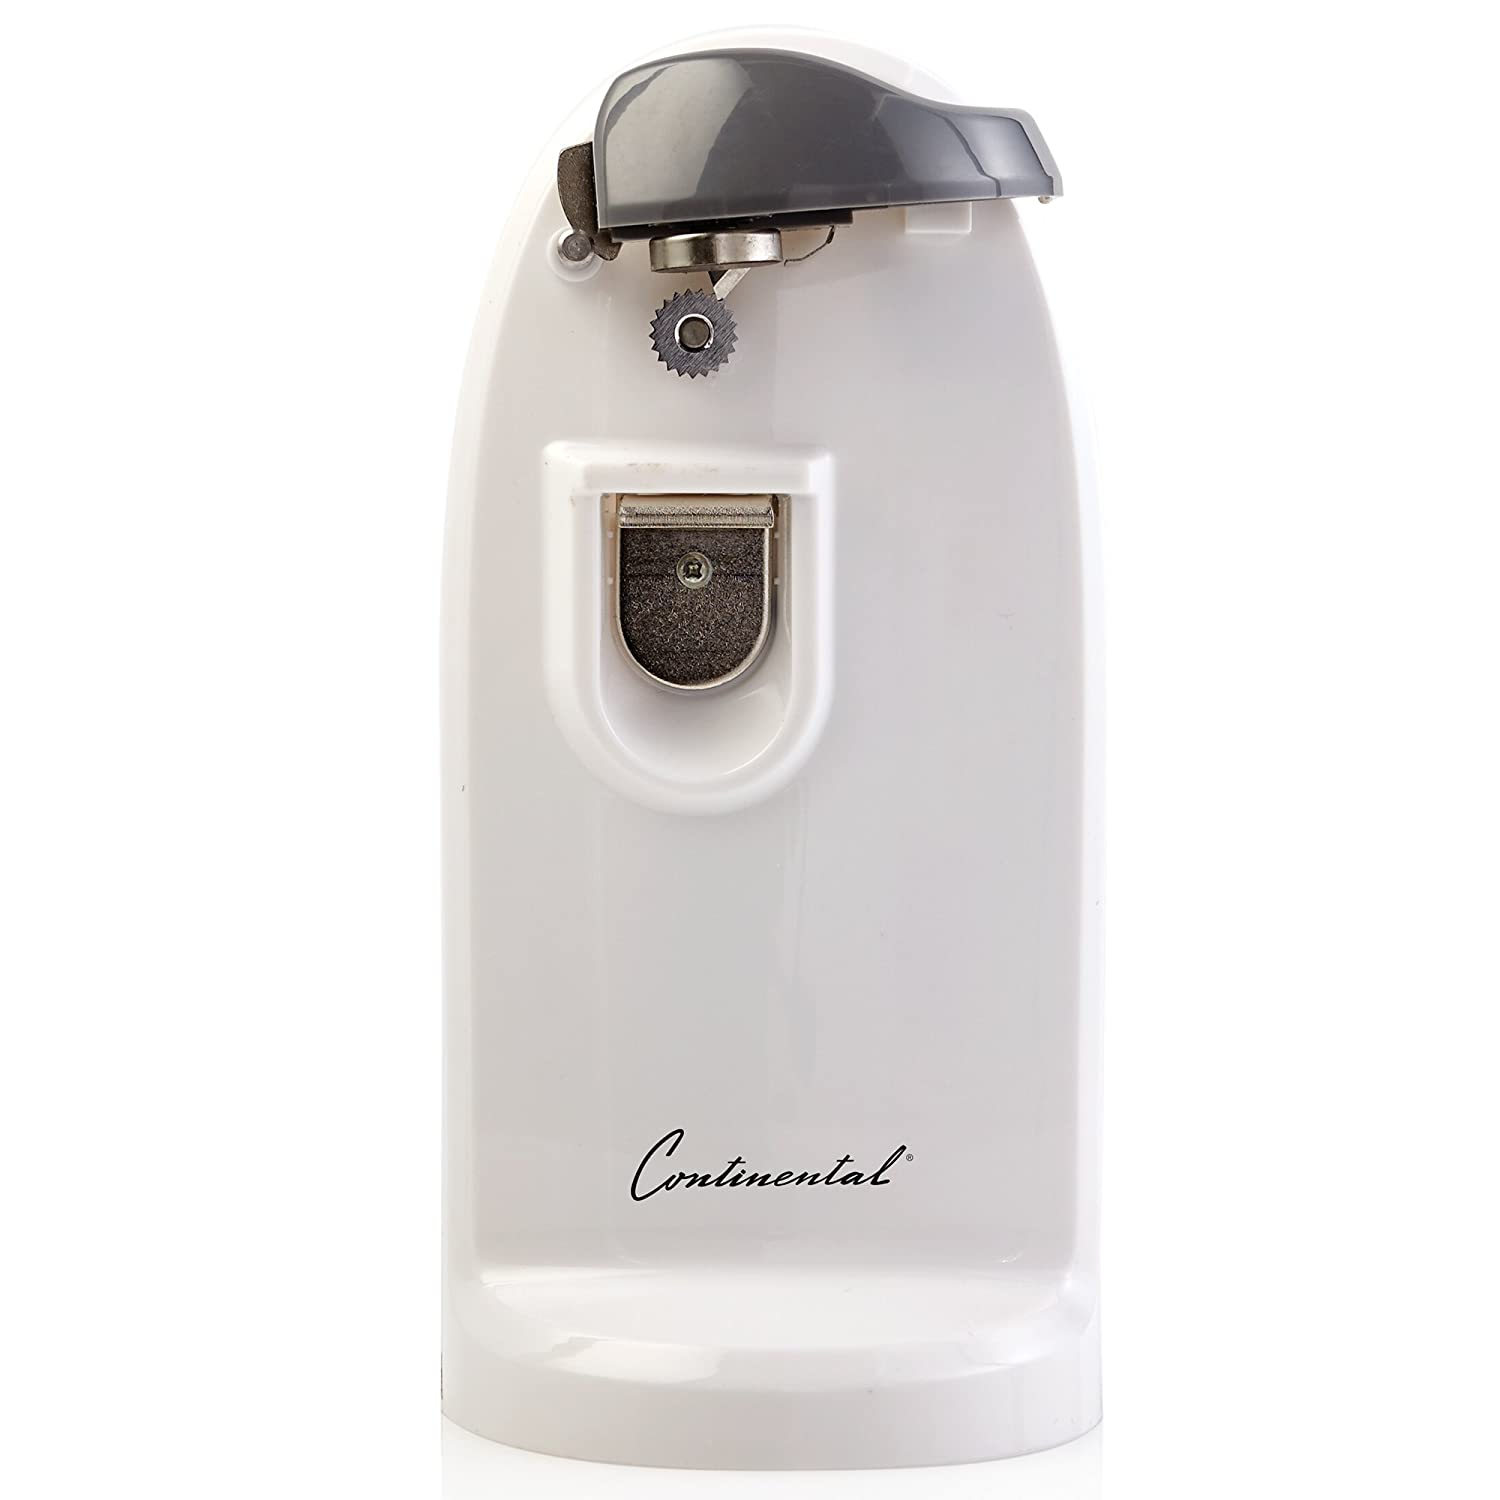 Continental Electrics CE22261 Tall Can Opener with Knife Sharpener-white